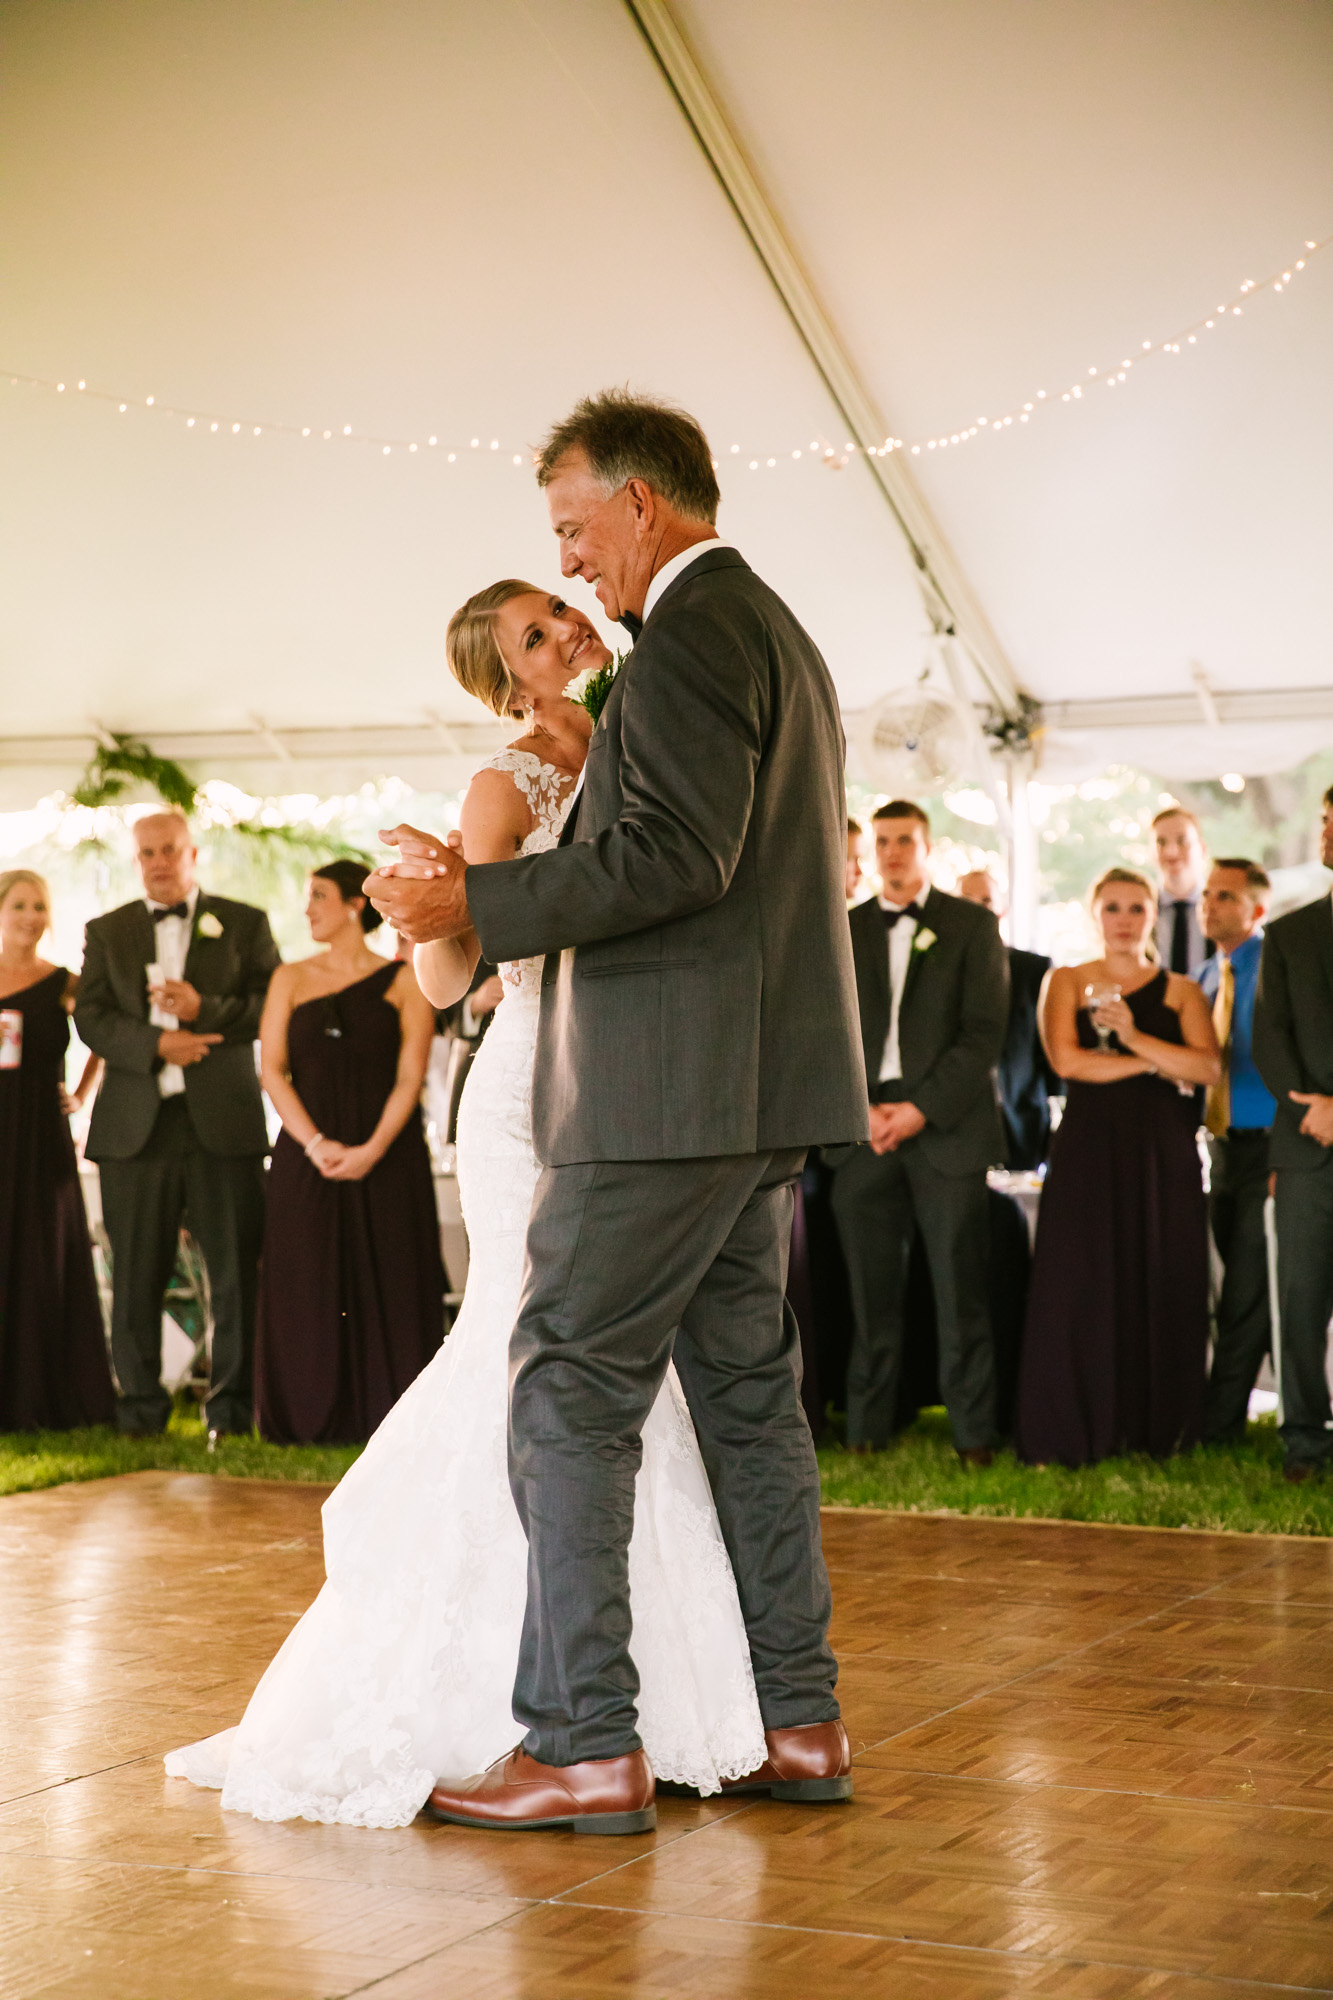 Waynesville, NC Wedding Photography | Father Daughter Dancing and Smiling